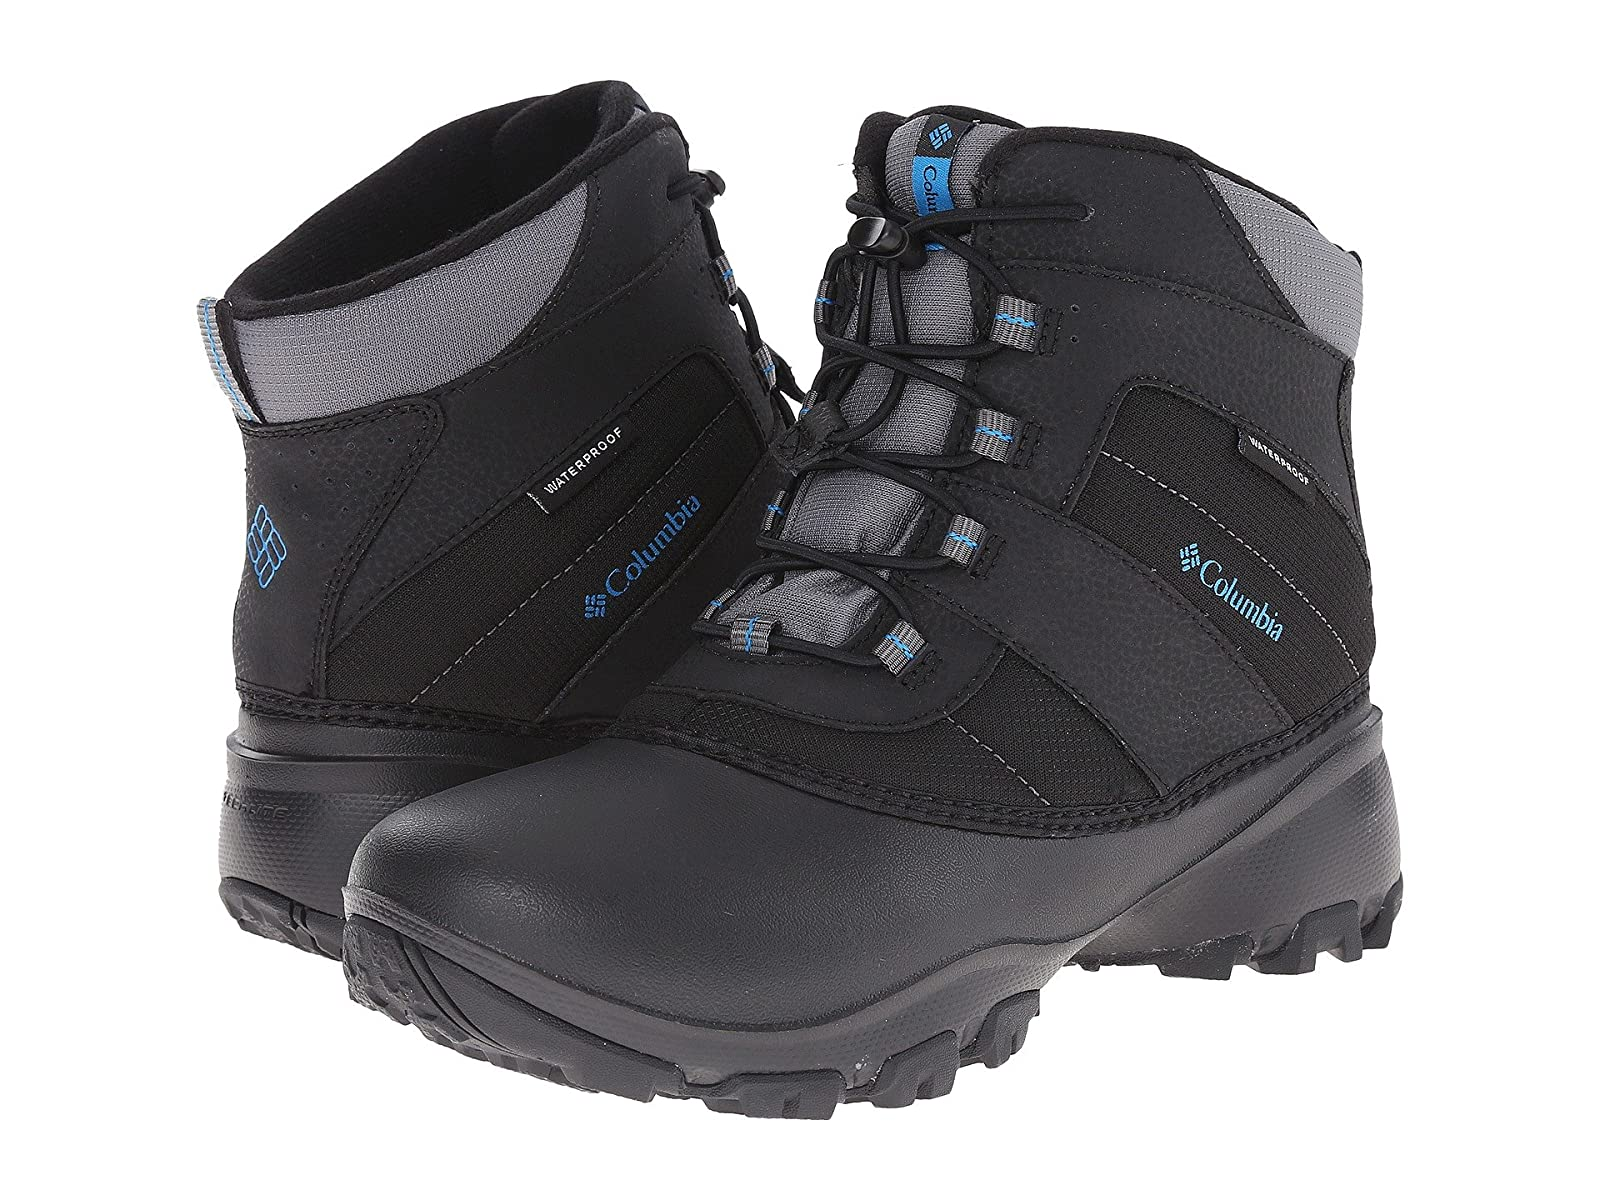 Columbia Kids Rope Tow™ III Waterproof Boot (Toddler/Little Kid/Big Kid)Affordable and distinctive shoes